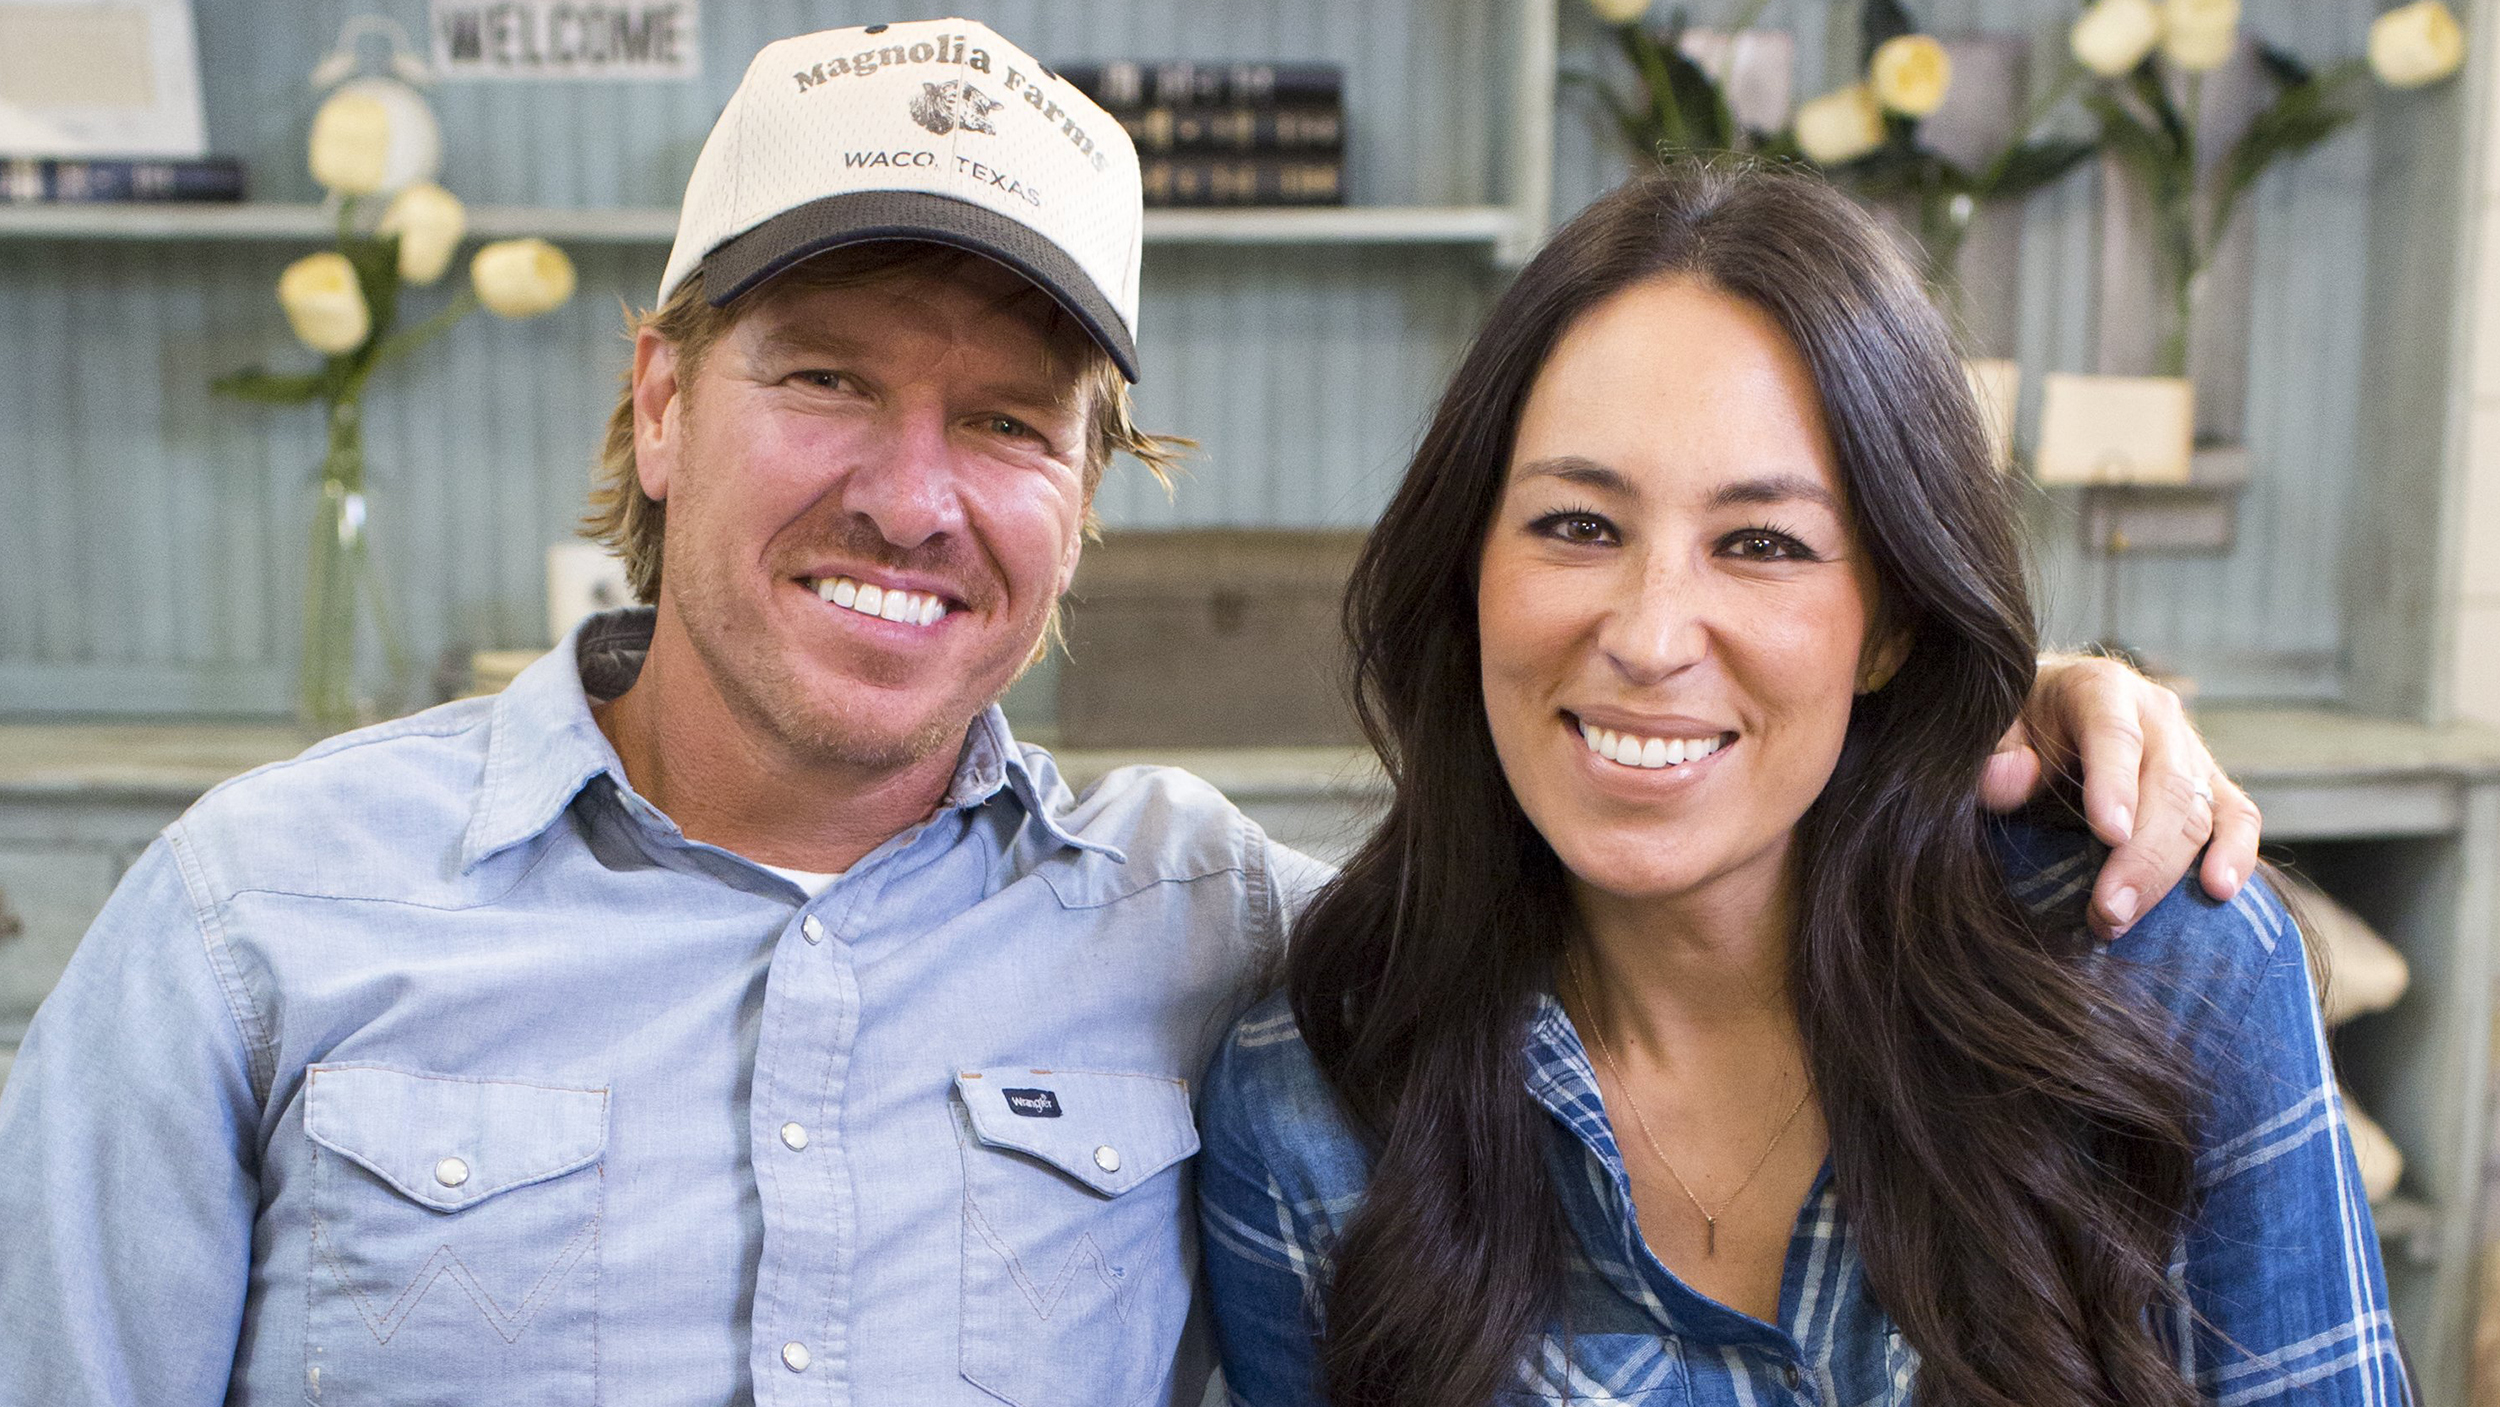 texas forever where chip and joanna gaines would live after waco. Black Bedroom Furniture Sets. Home Design Ideas